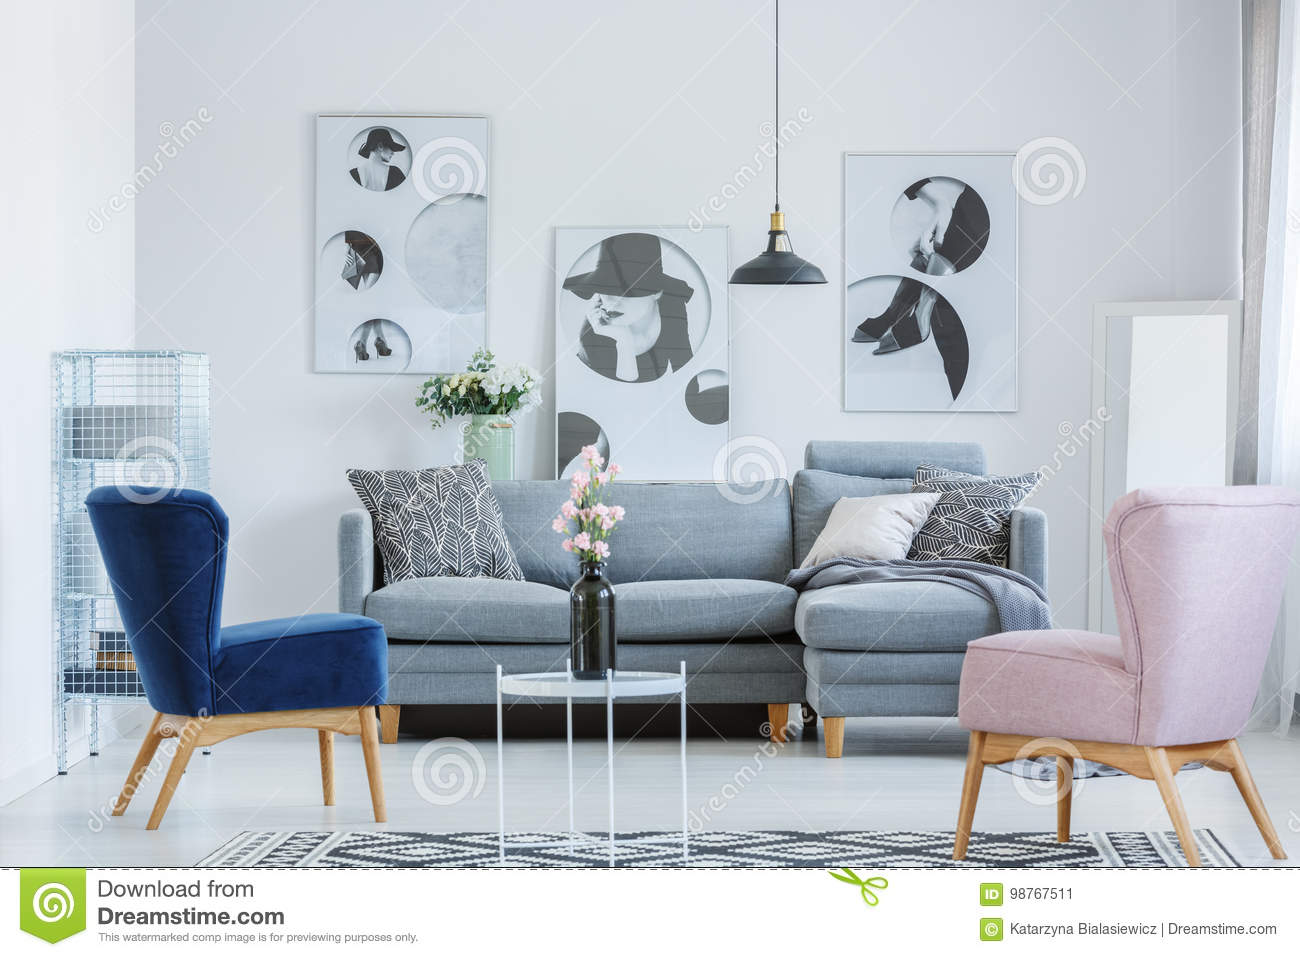 blue chair living room storage ideas built pink and armchair stock image of lamp flat 98767511 armchairs in cozy with grey sofa black vase on small coffee table